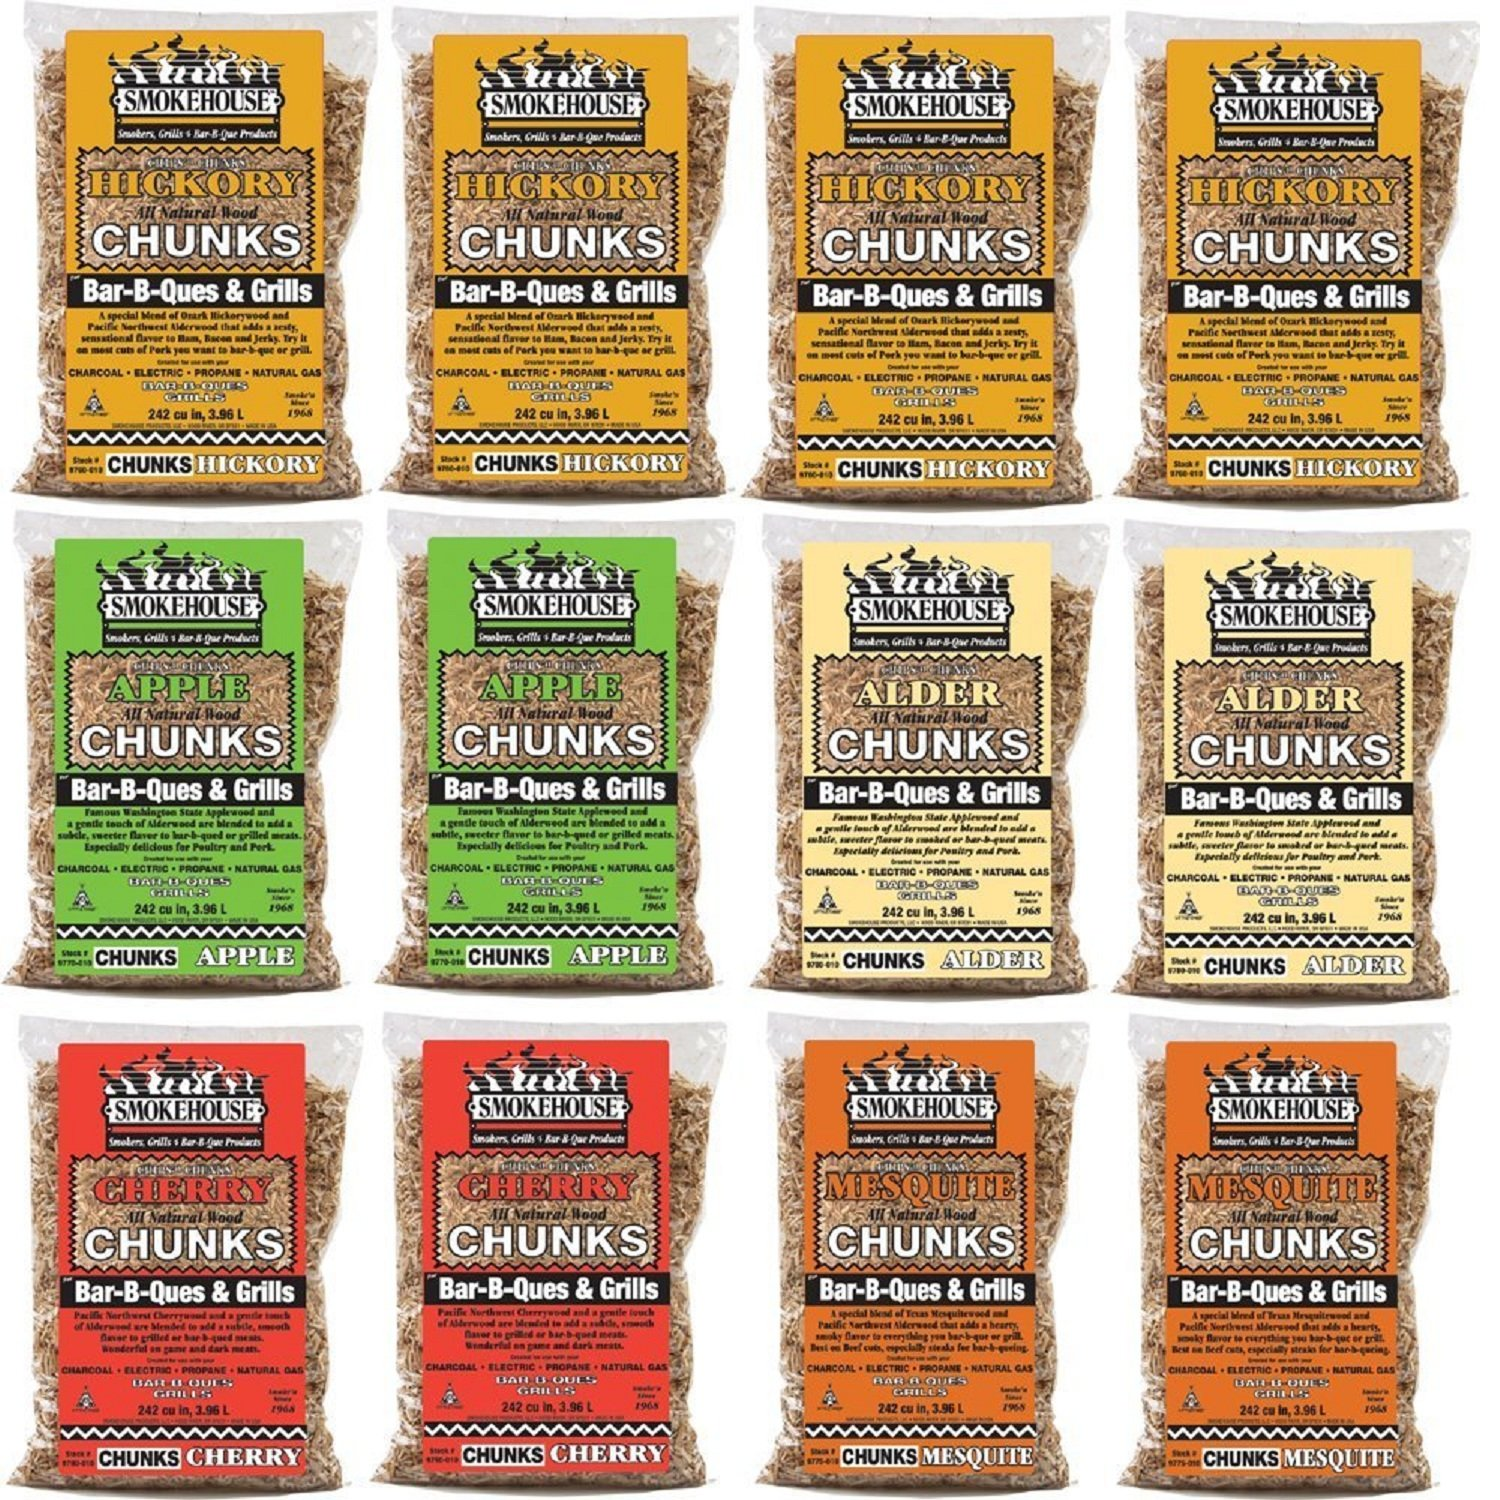 Smokehouse Products All Natural Flavored Wood Smoking Chunks, 12 Pack Assorted Flavors by Smokehouse